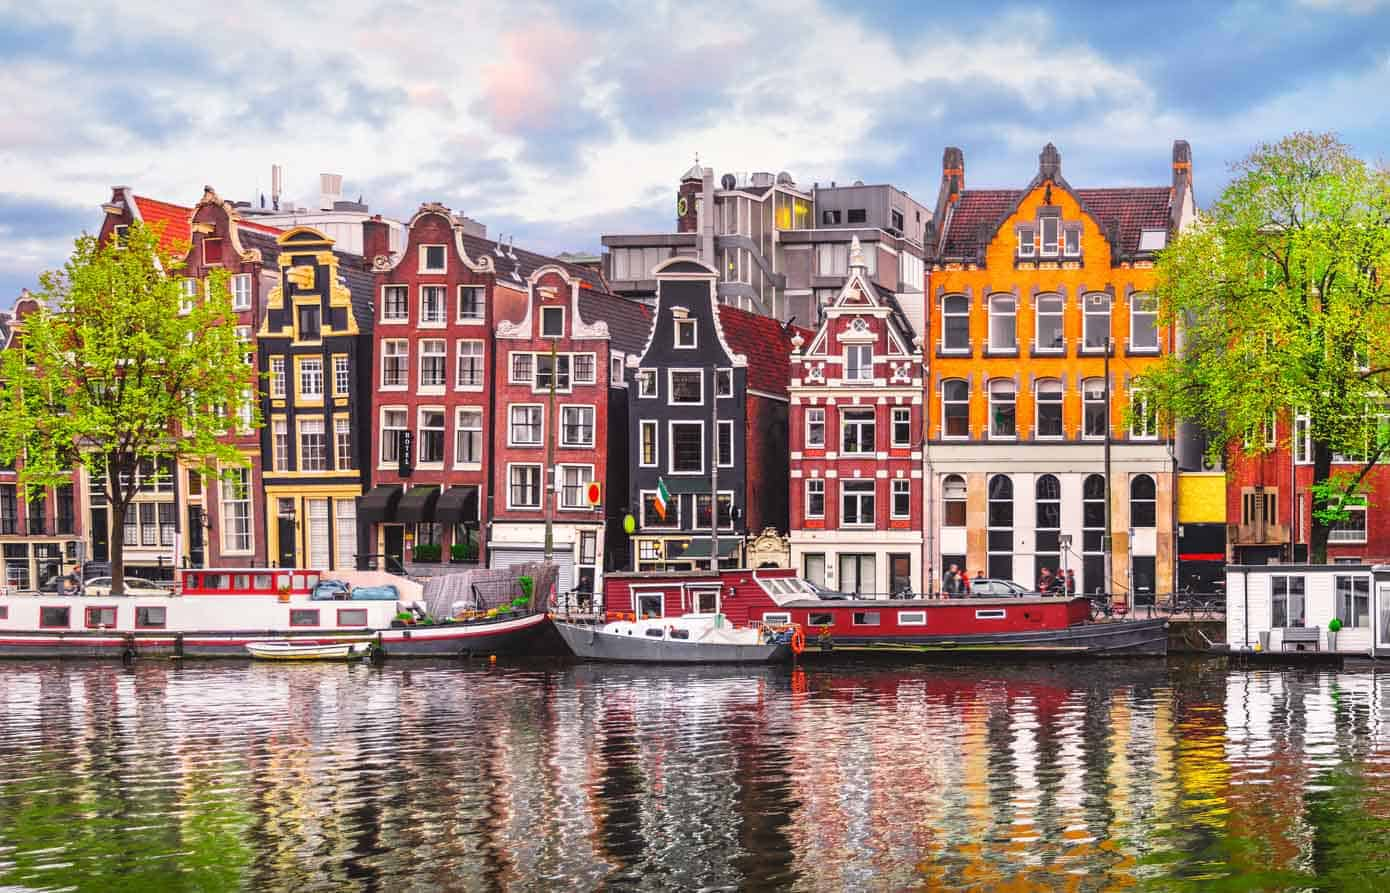 Colorful European houses lining the Amstel River in Amsterdam, Netherlands.